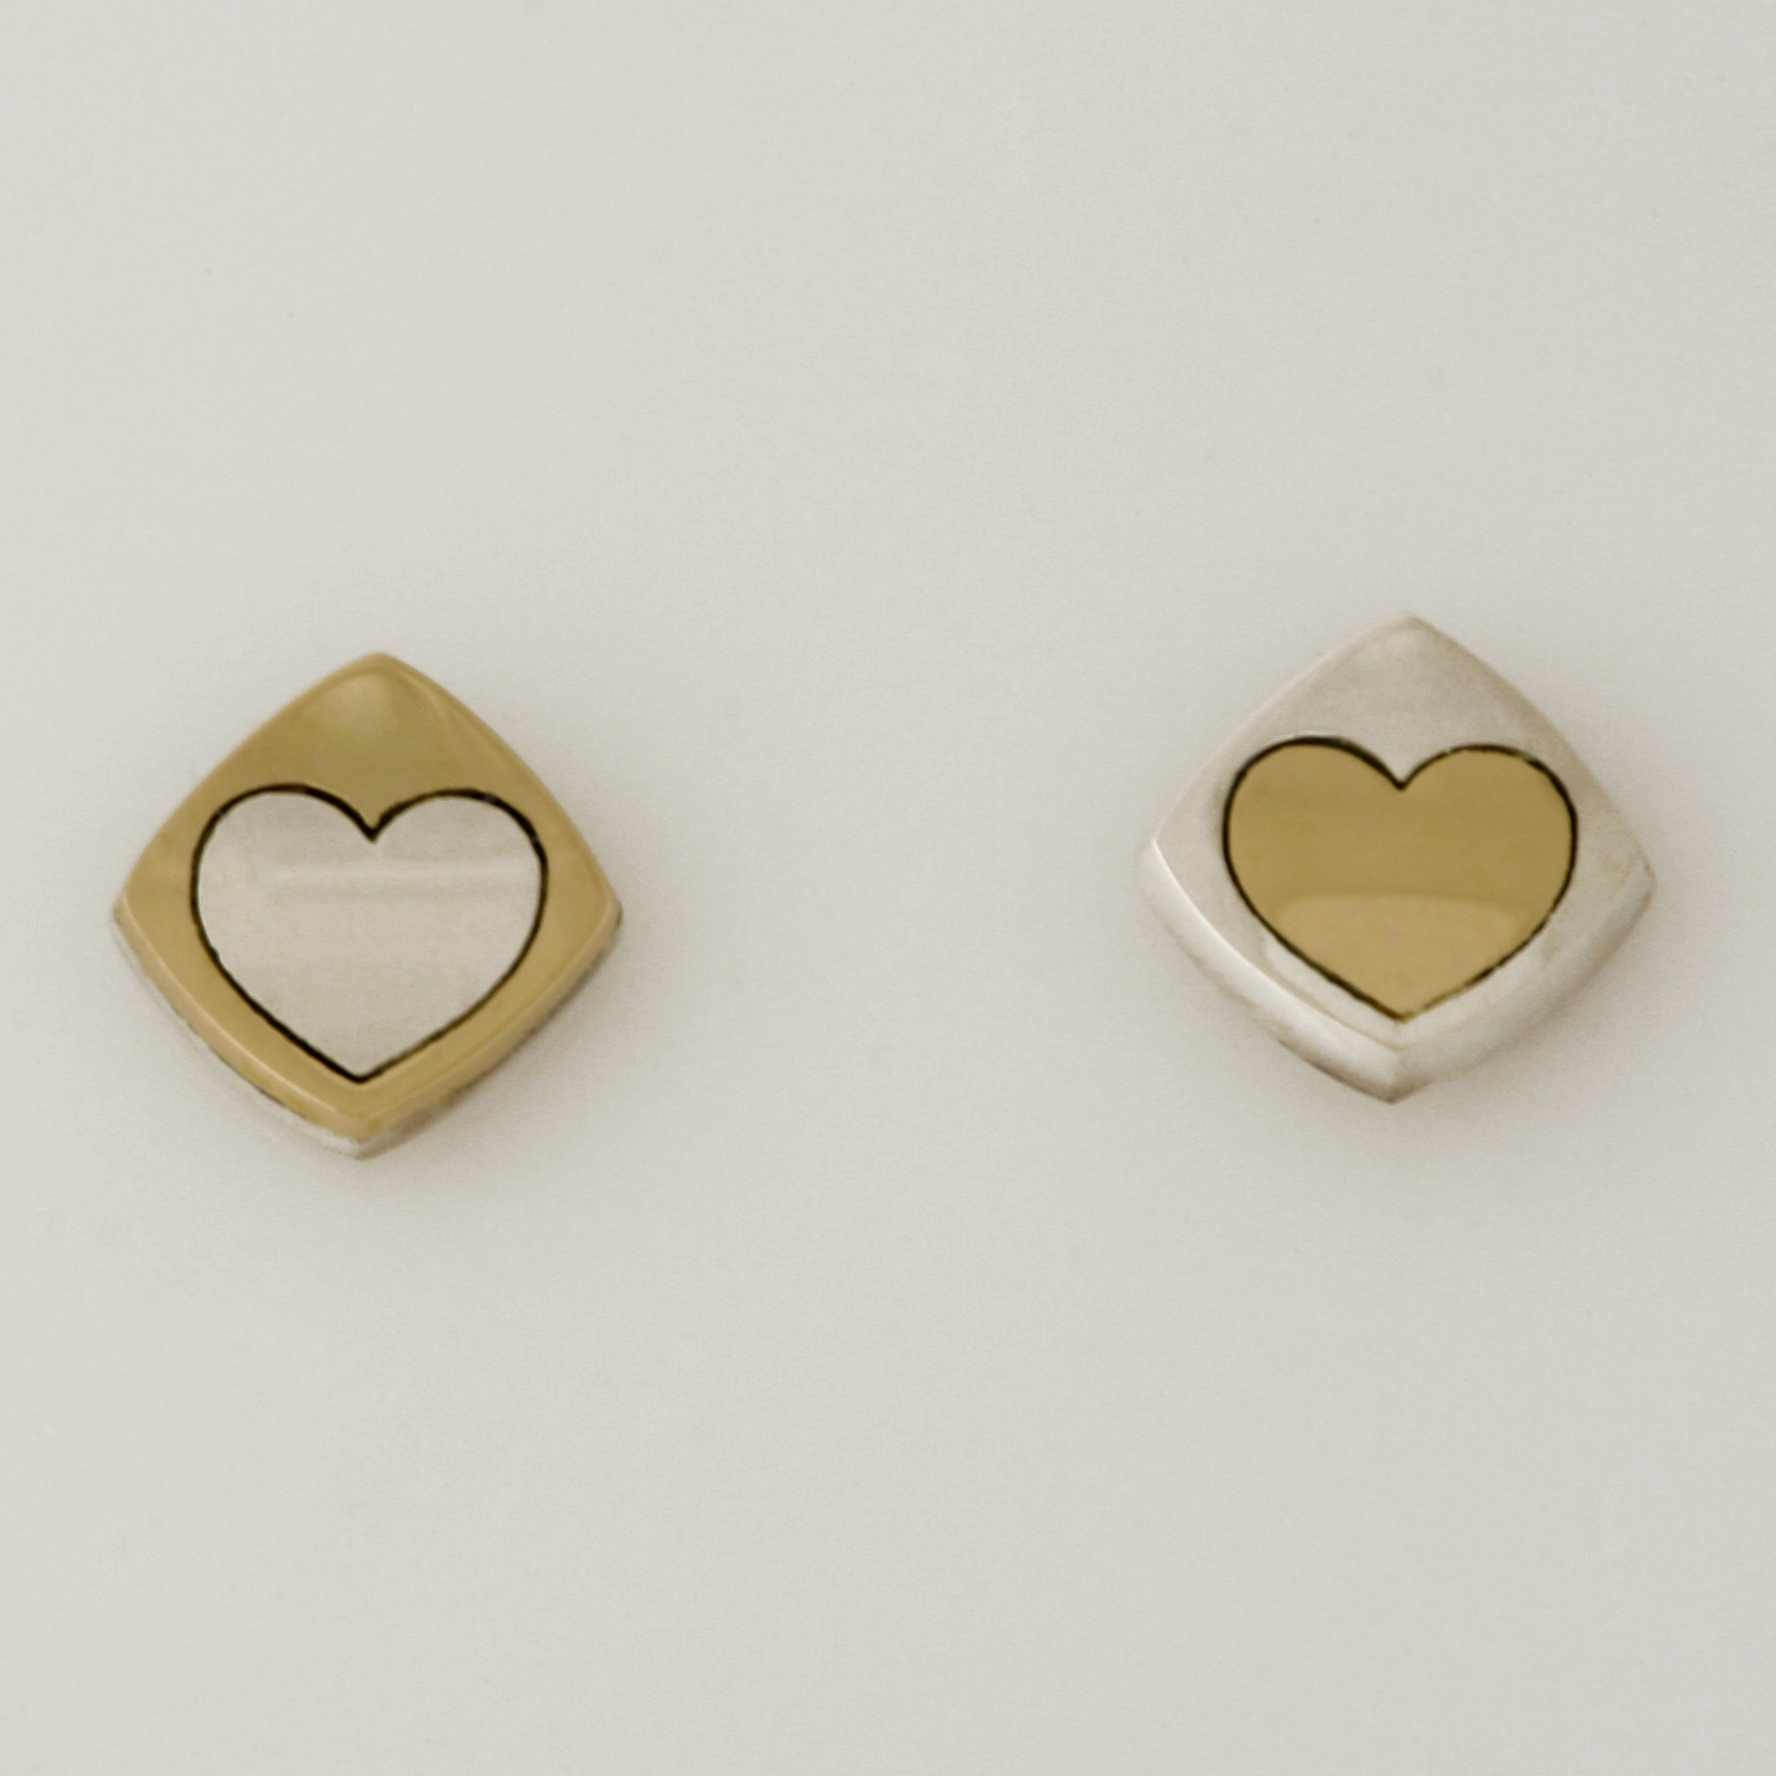 'PLAY' heart earrings made in sterling silver and 14ct yellow gold